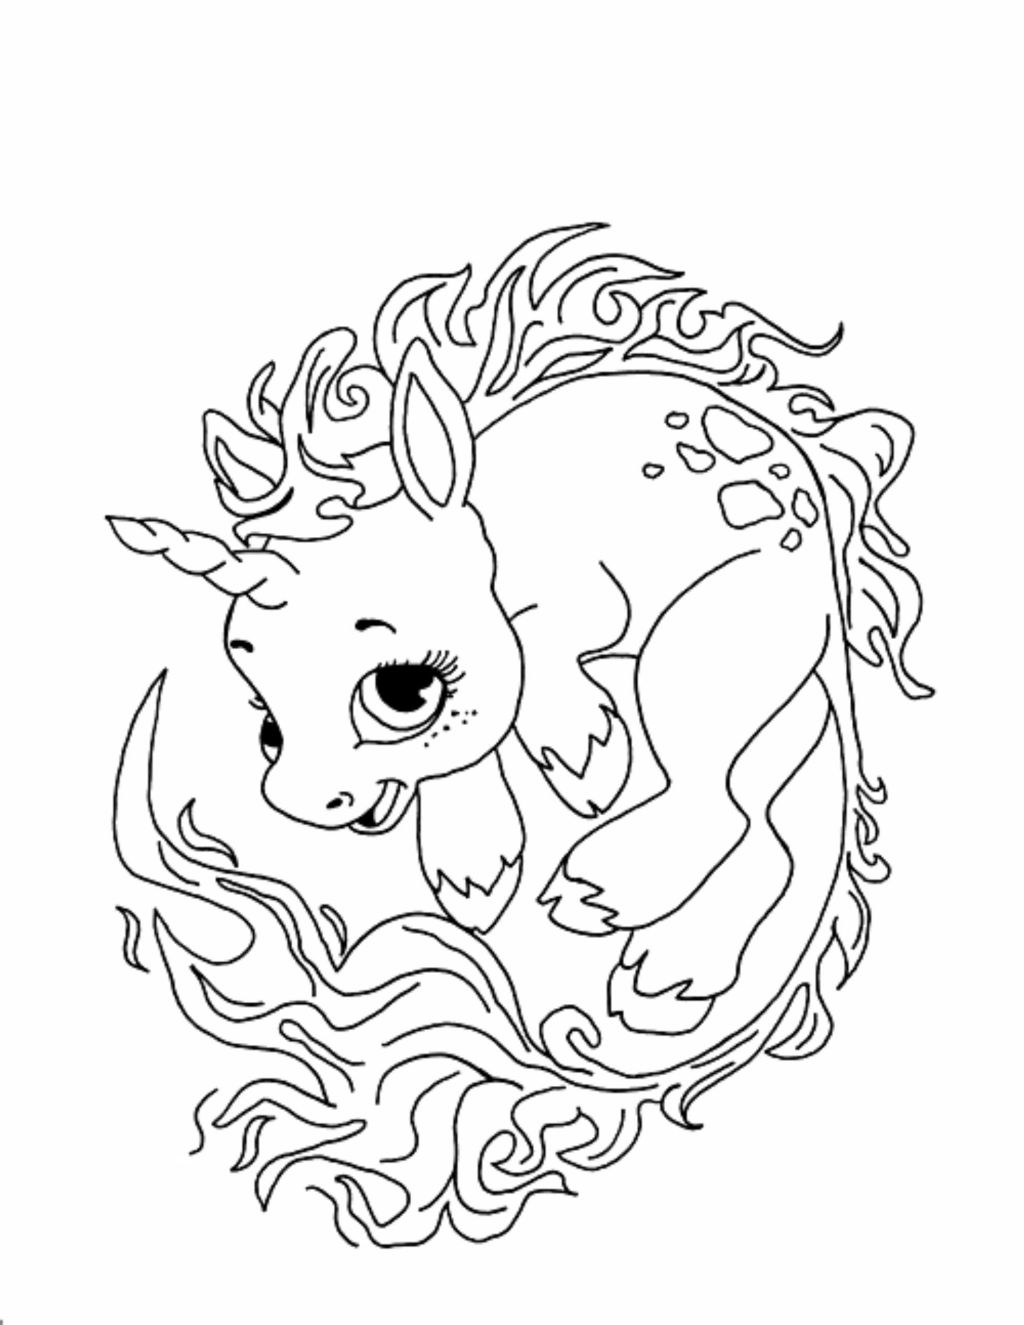 unicorn coloring videos cute unicorn coloring pages at getdrawings free download videos coloring unicorn